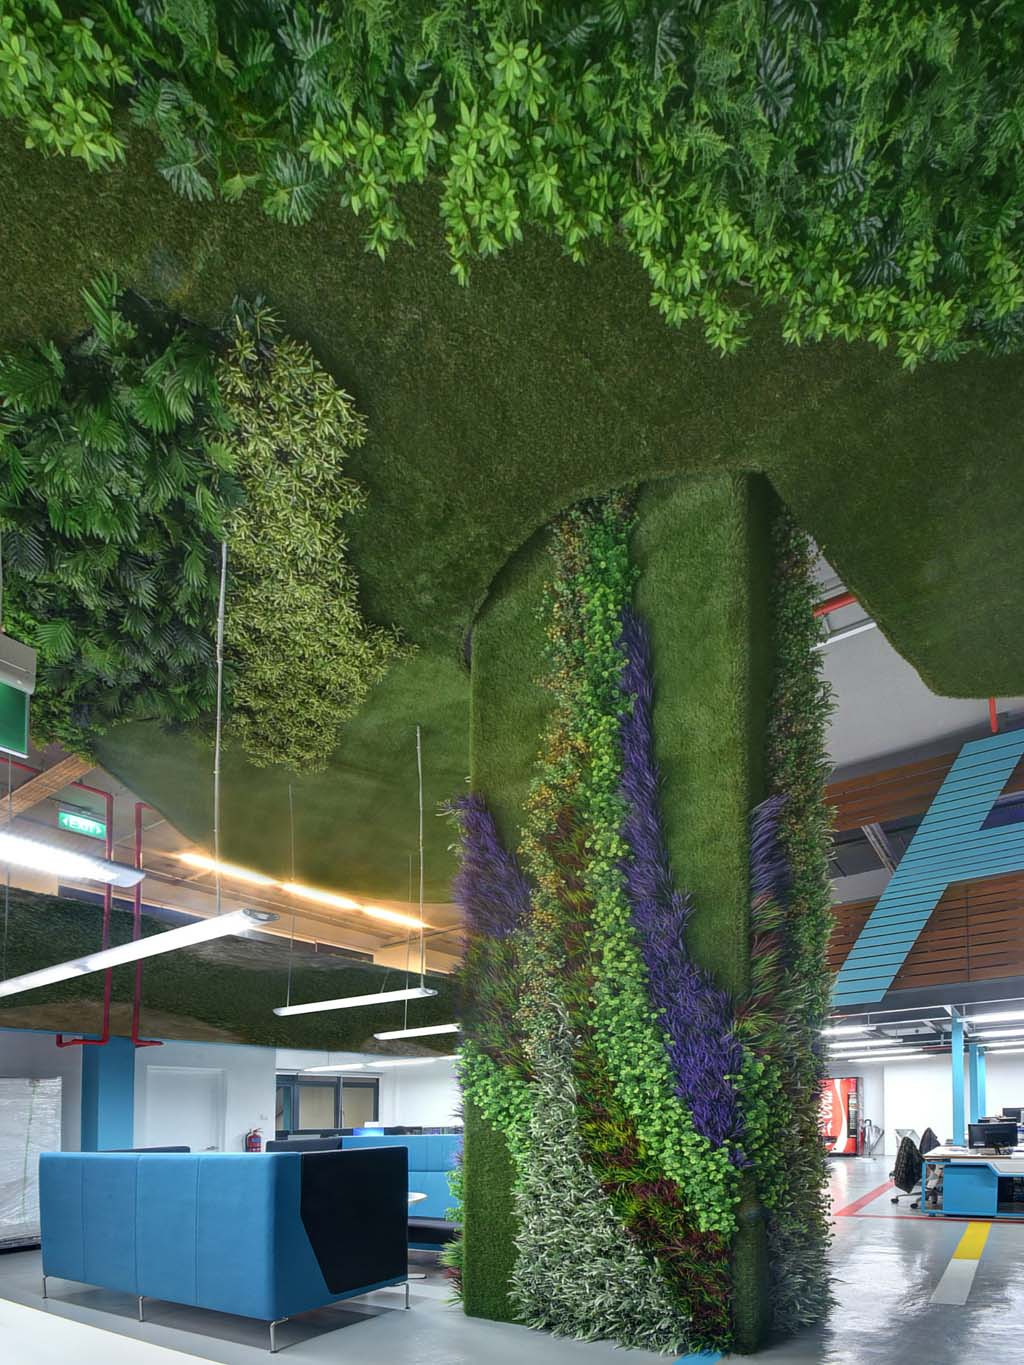 Artificial Grass And Plants Clad A Pillar And Ceiling In